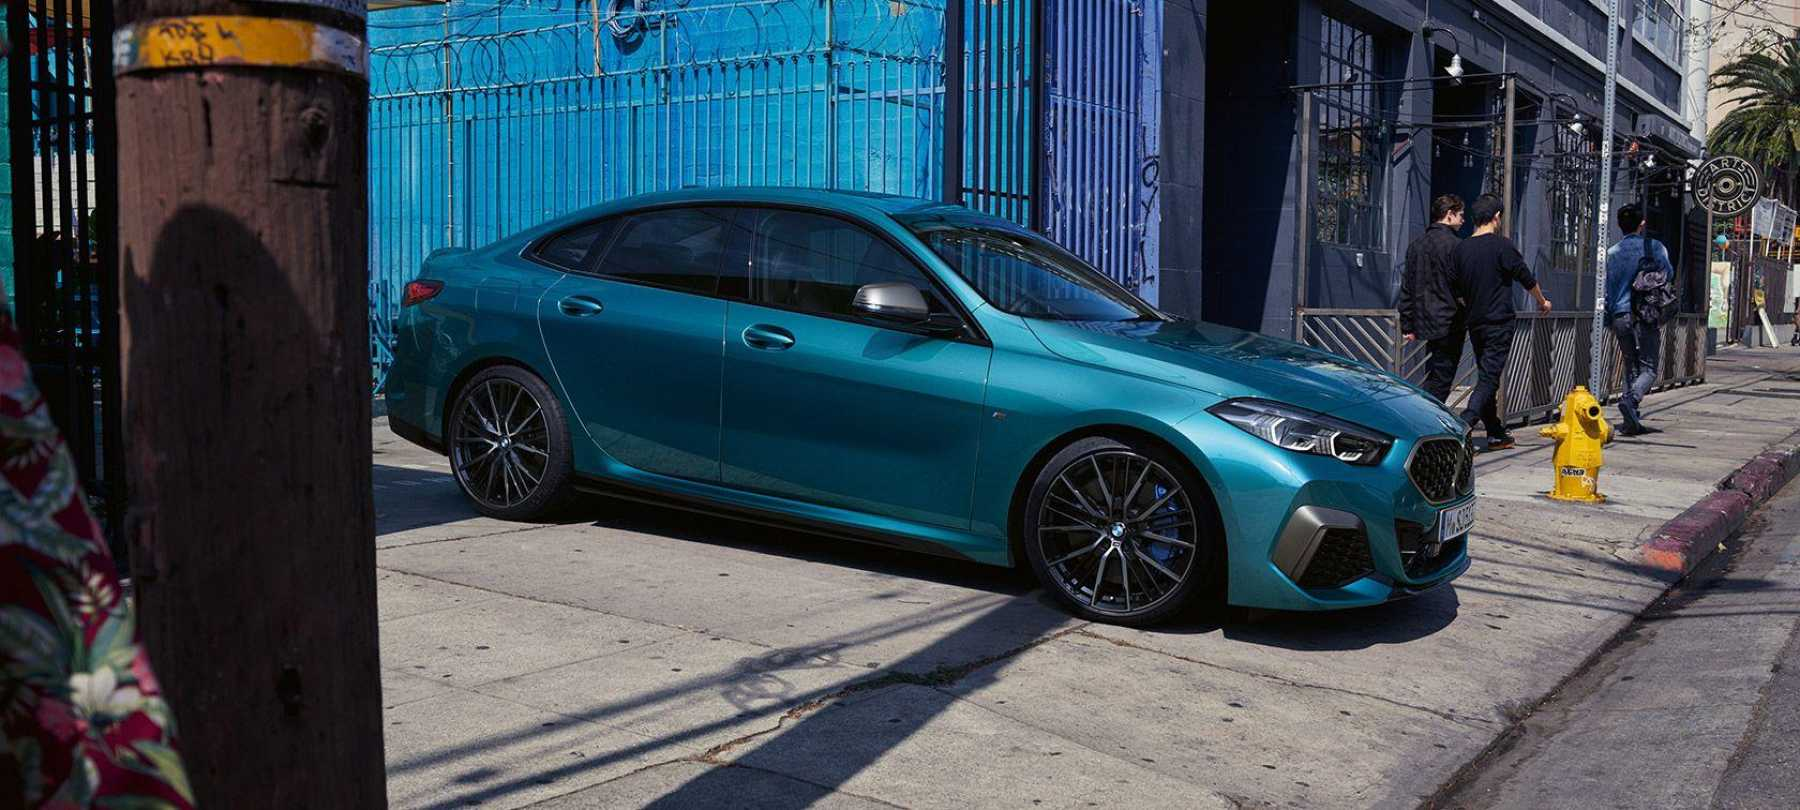 New 2 Series Gran Coupe